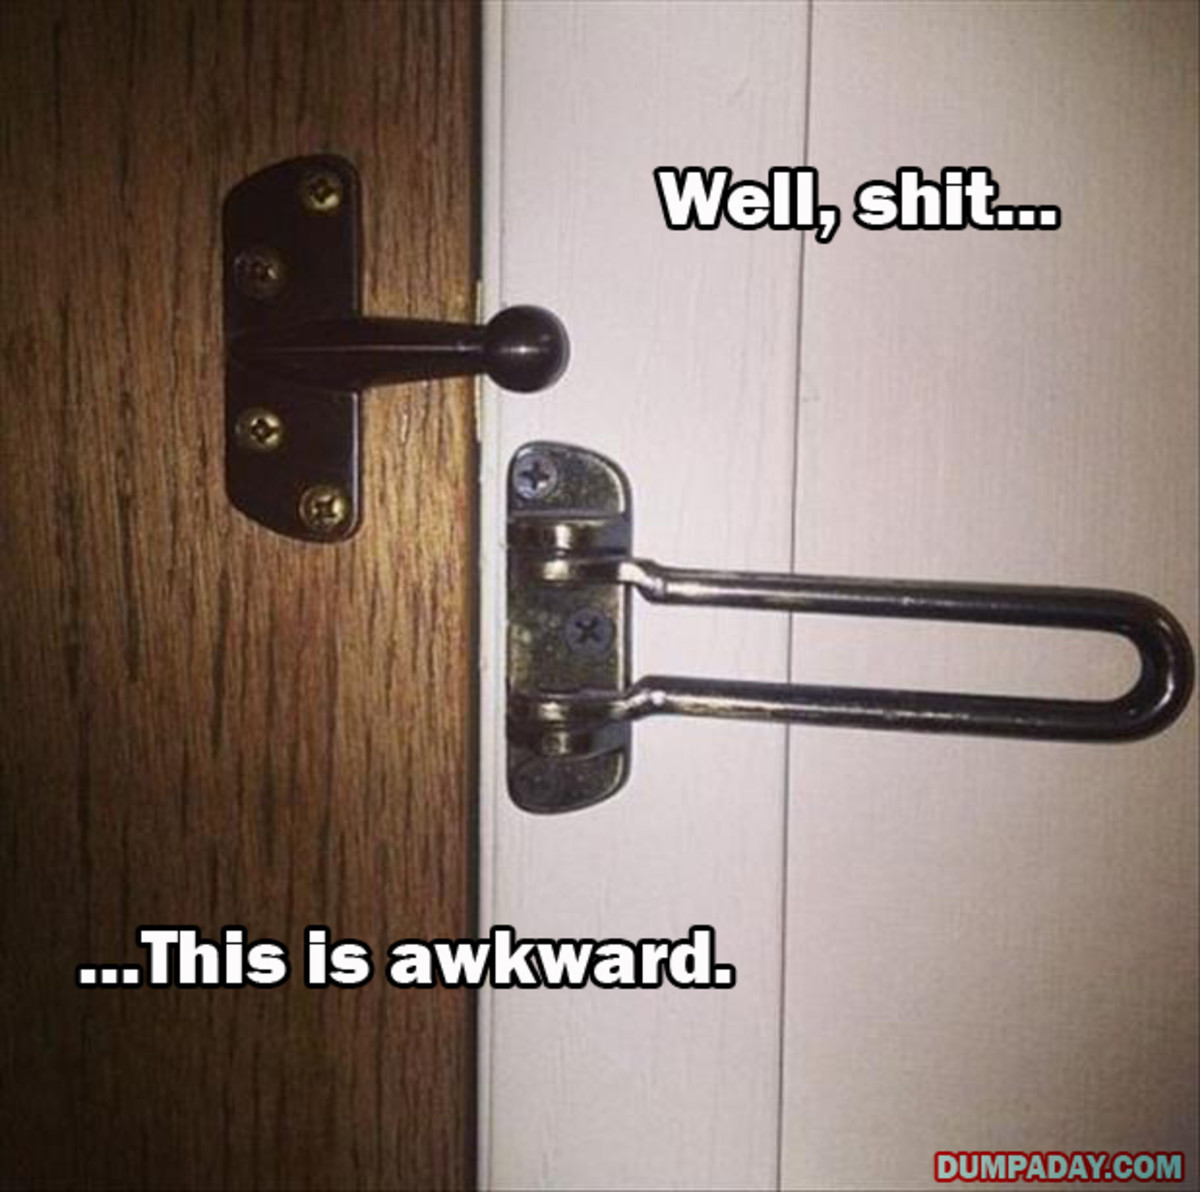 Hope the villain is not standing outside the door that has this lock.